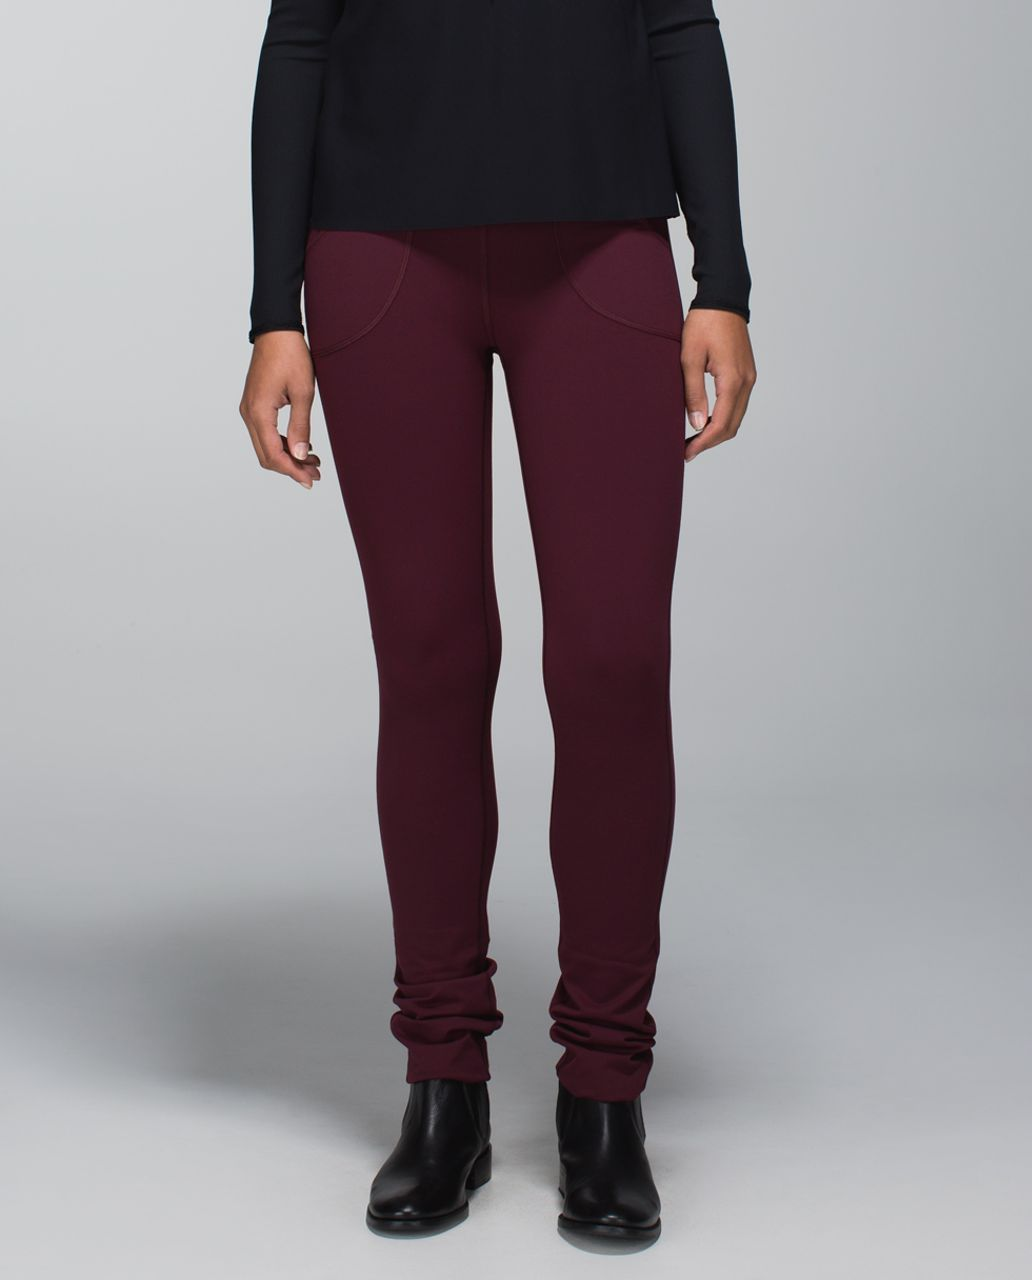 Lululemon Skinny Will Pant *Full-On Luon - Bordeaux Drama